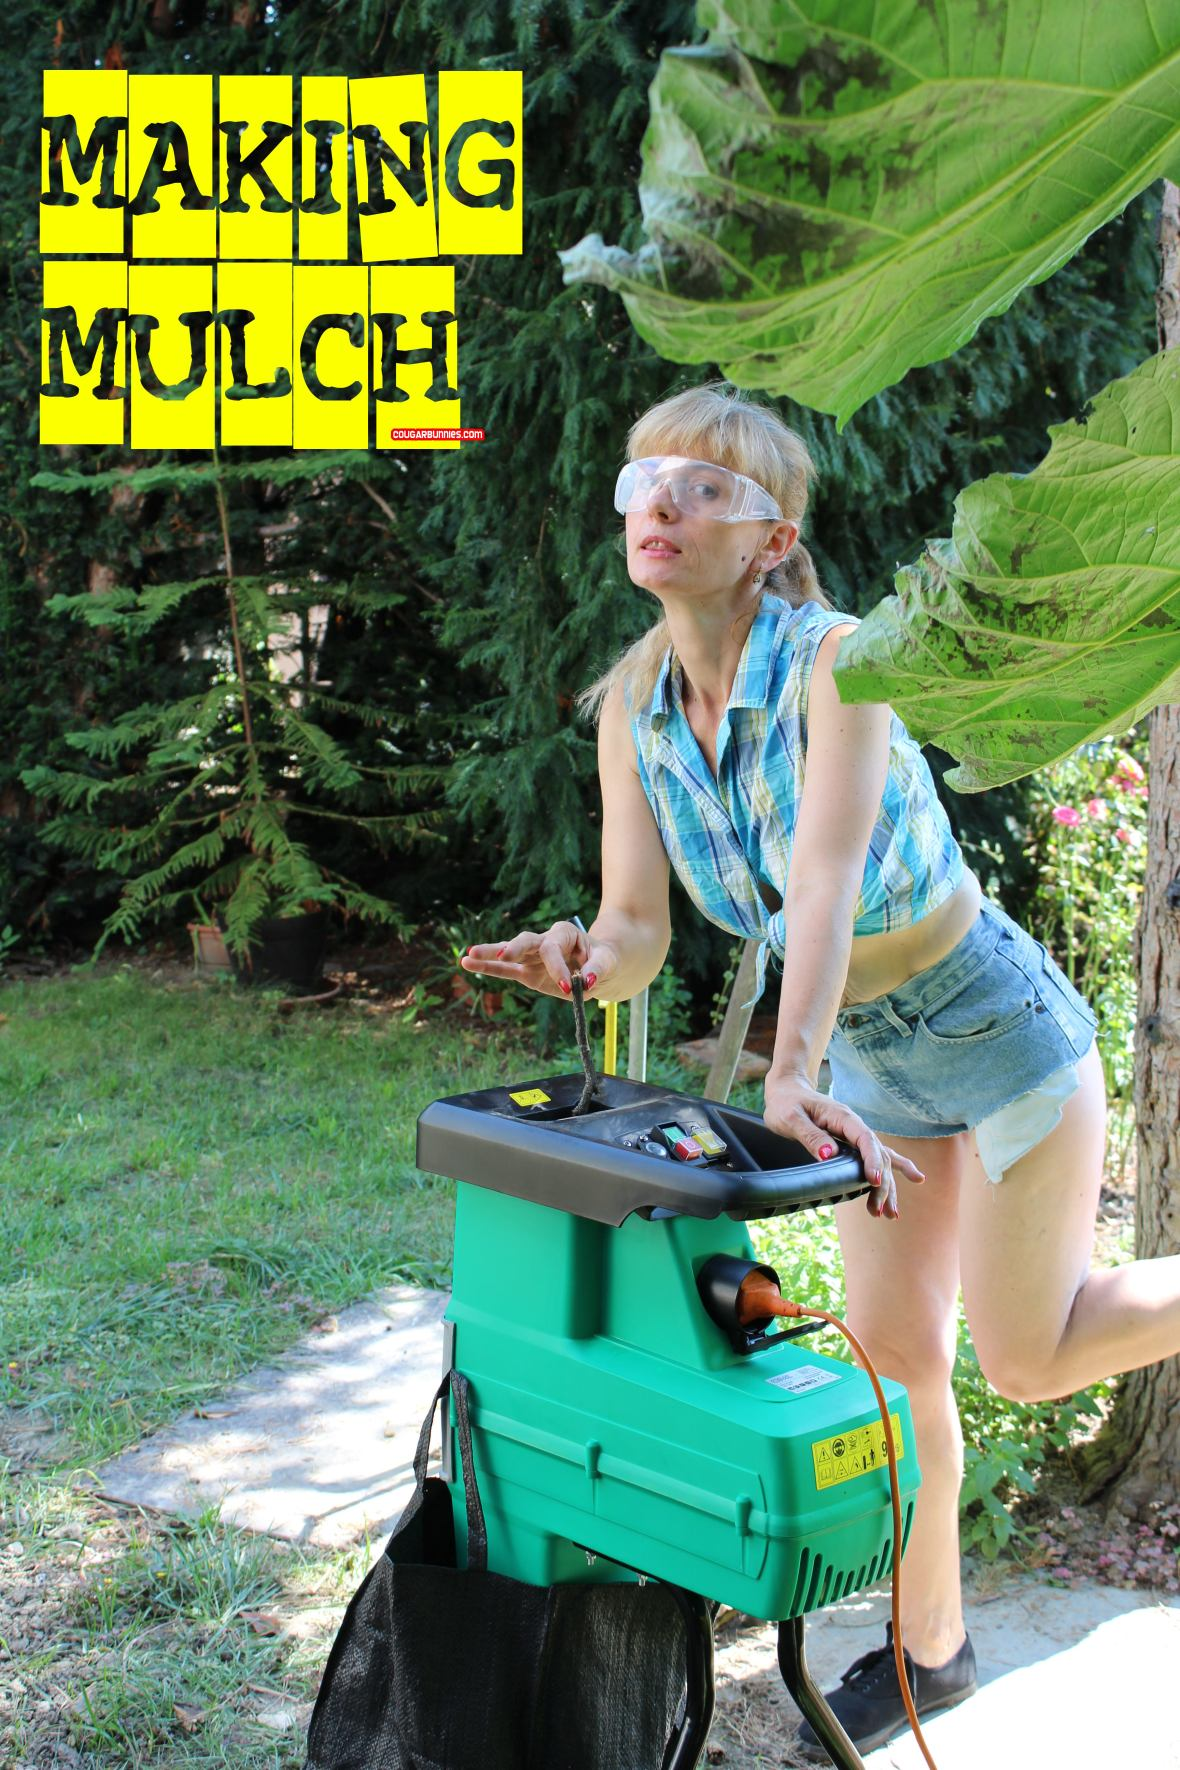 Doris makes mulch of wood chips.